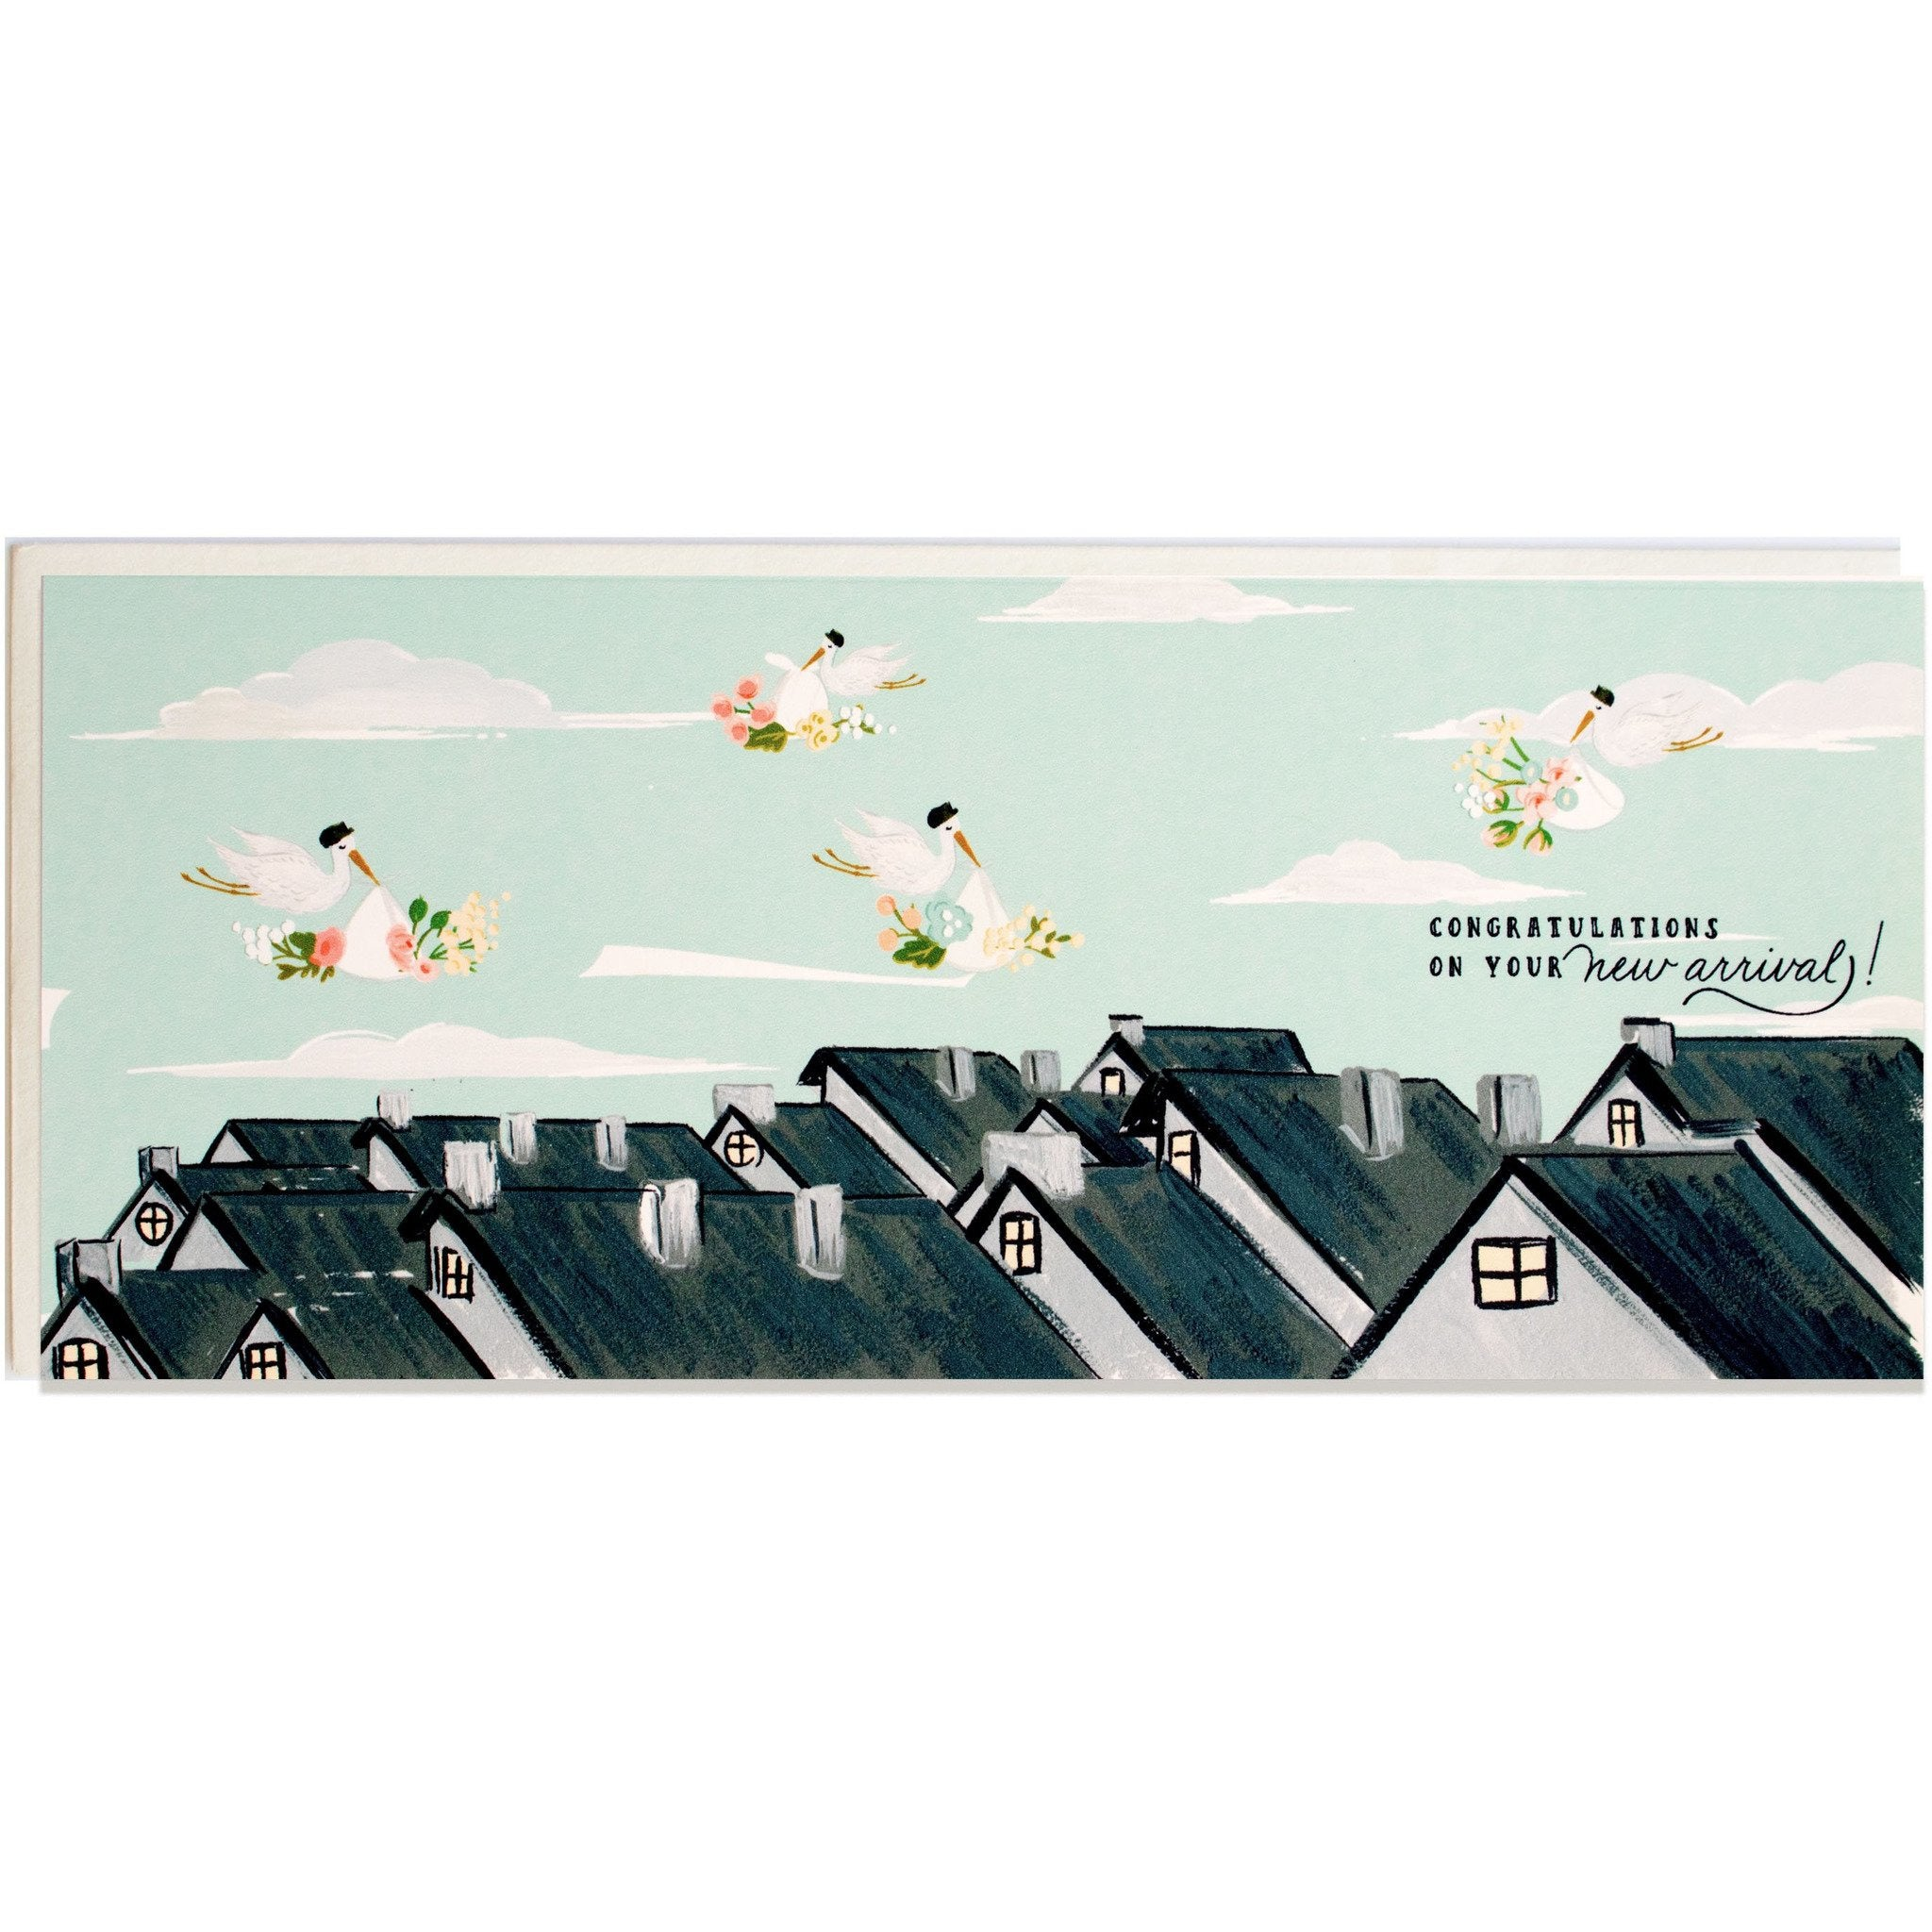 Rooftop Special Delivery Baby card - The First Snow